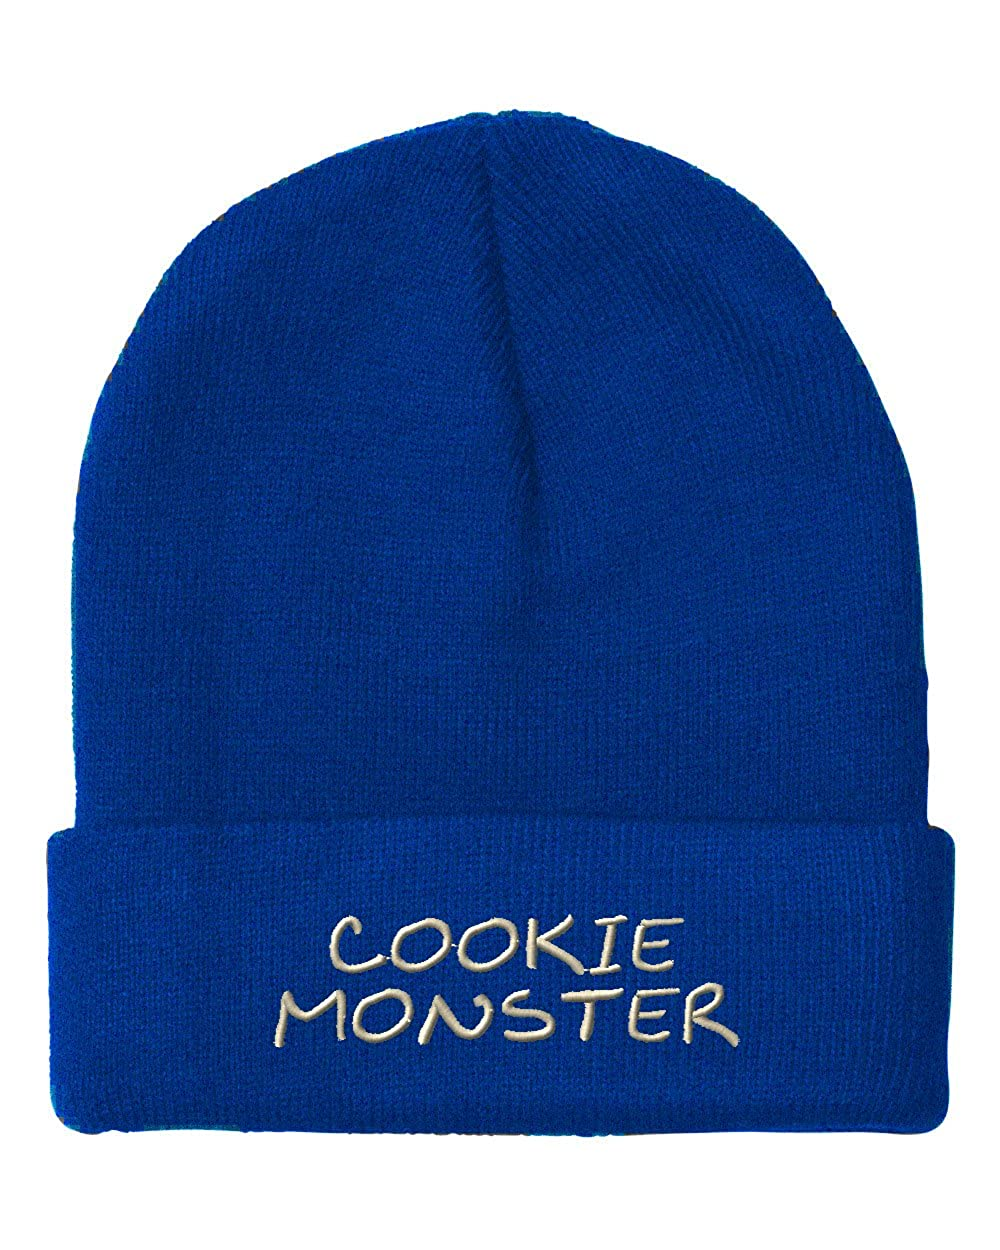 ca002d89e3c Amazon.com  Speedy Pros Cookie Monster Embroidered Unisex Adult Acrylic  Beanie Winter Hat - Black